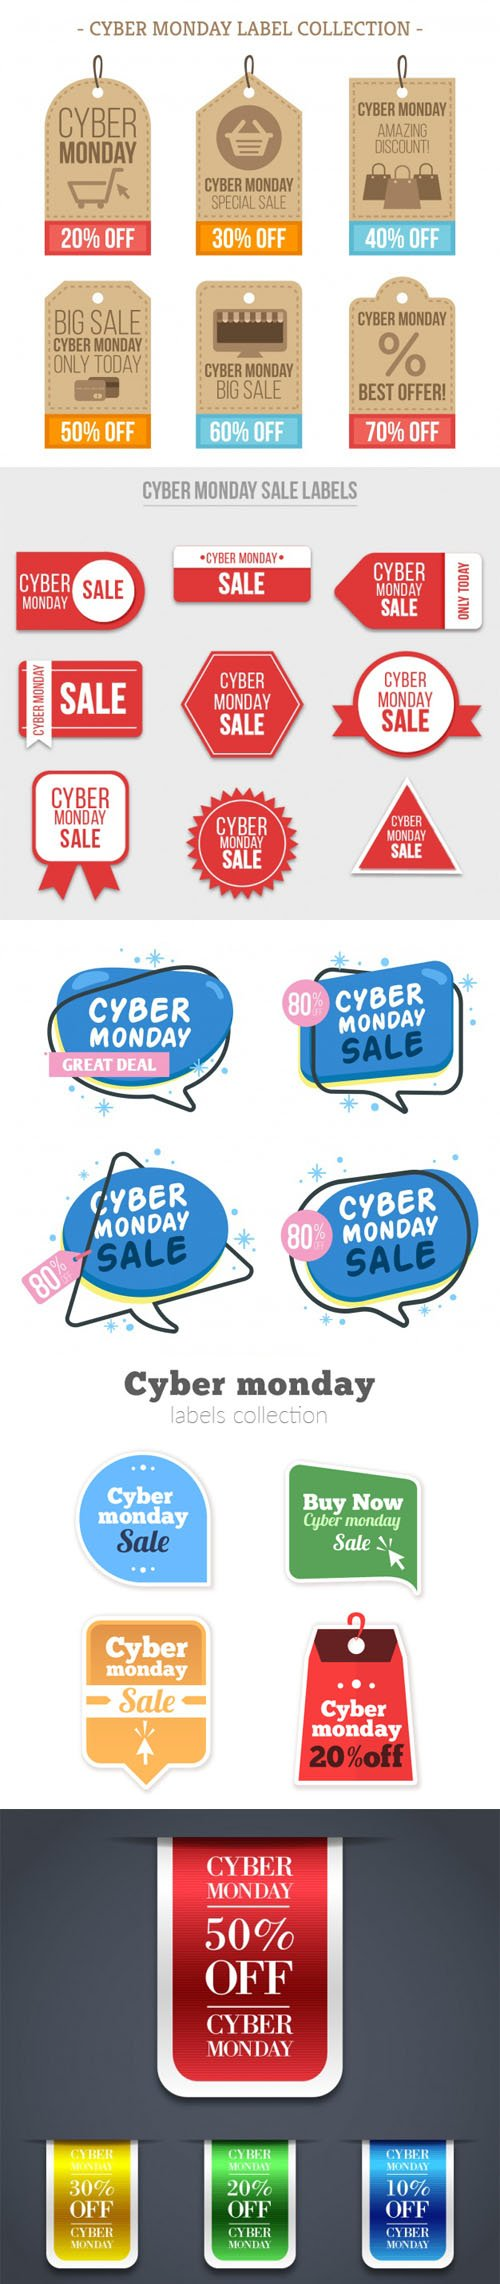 Cyber Monday Sales Elements Collection